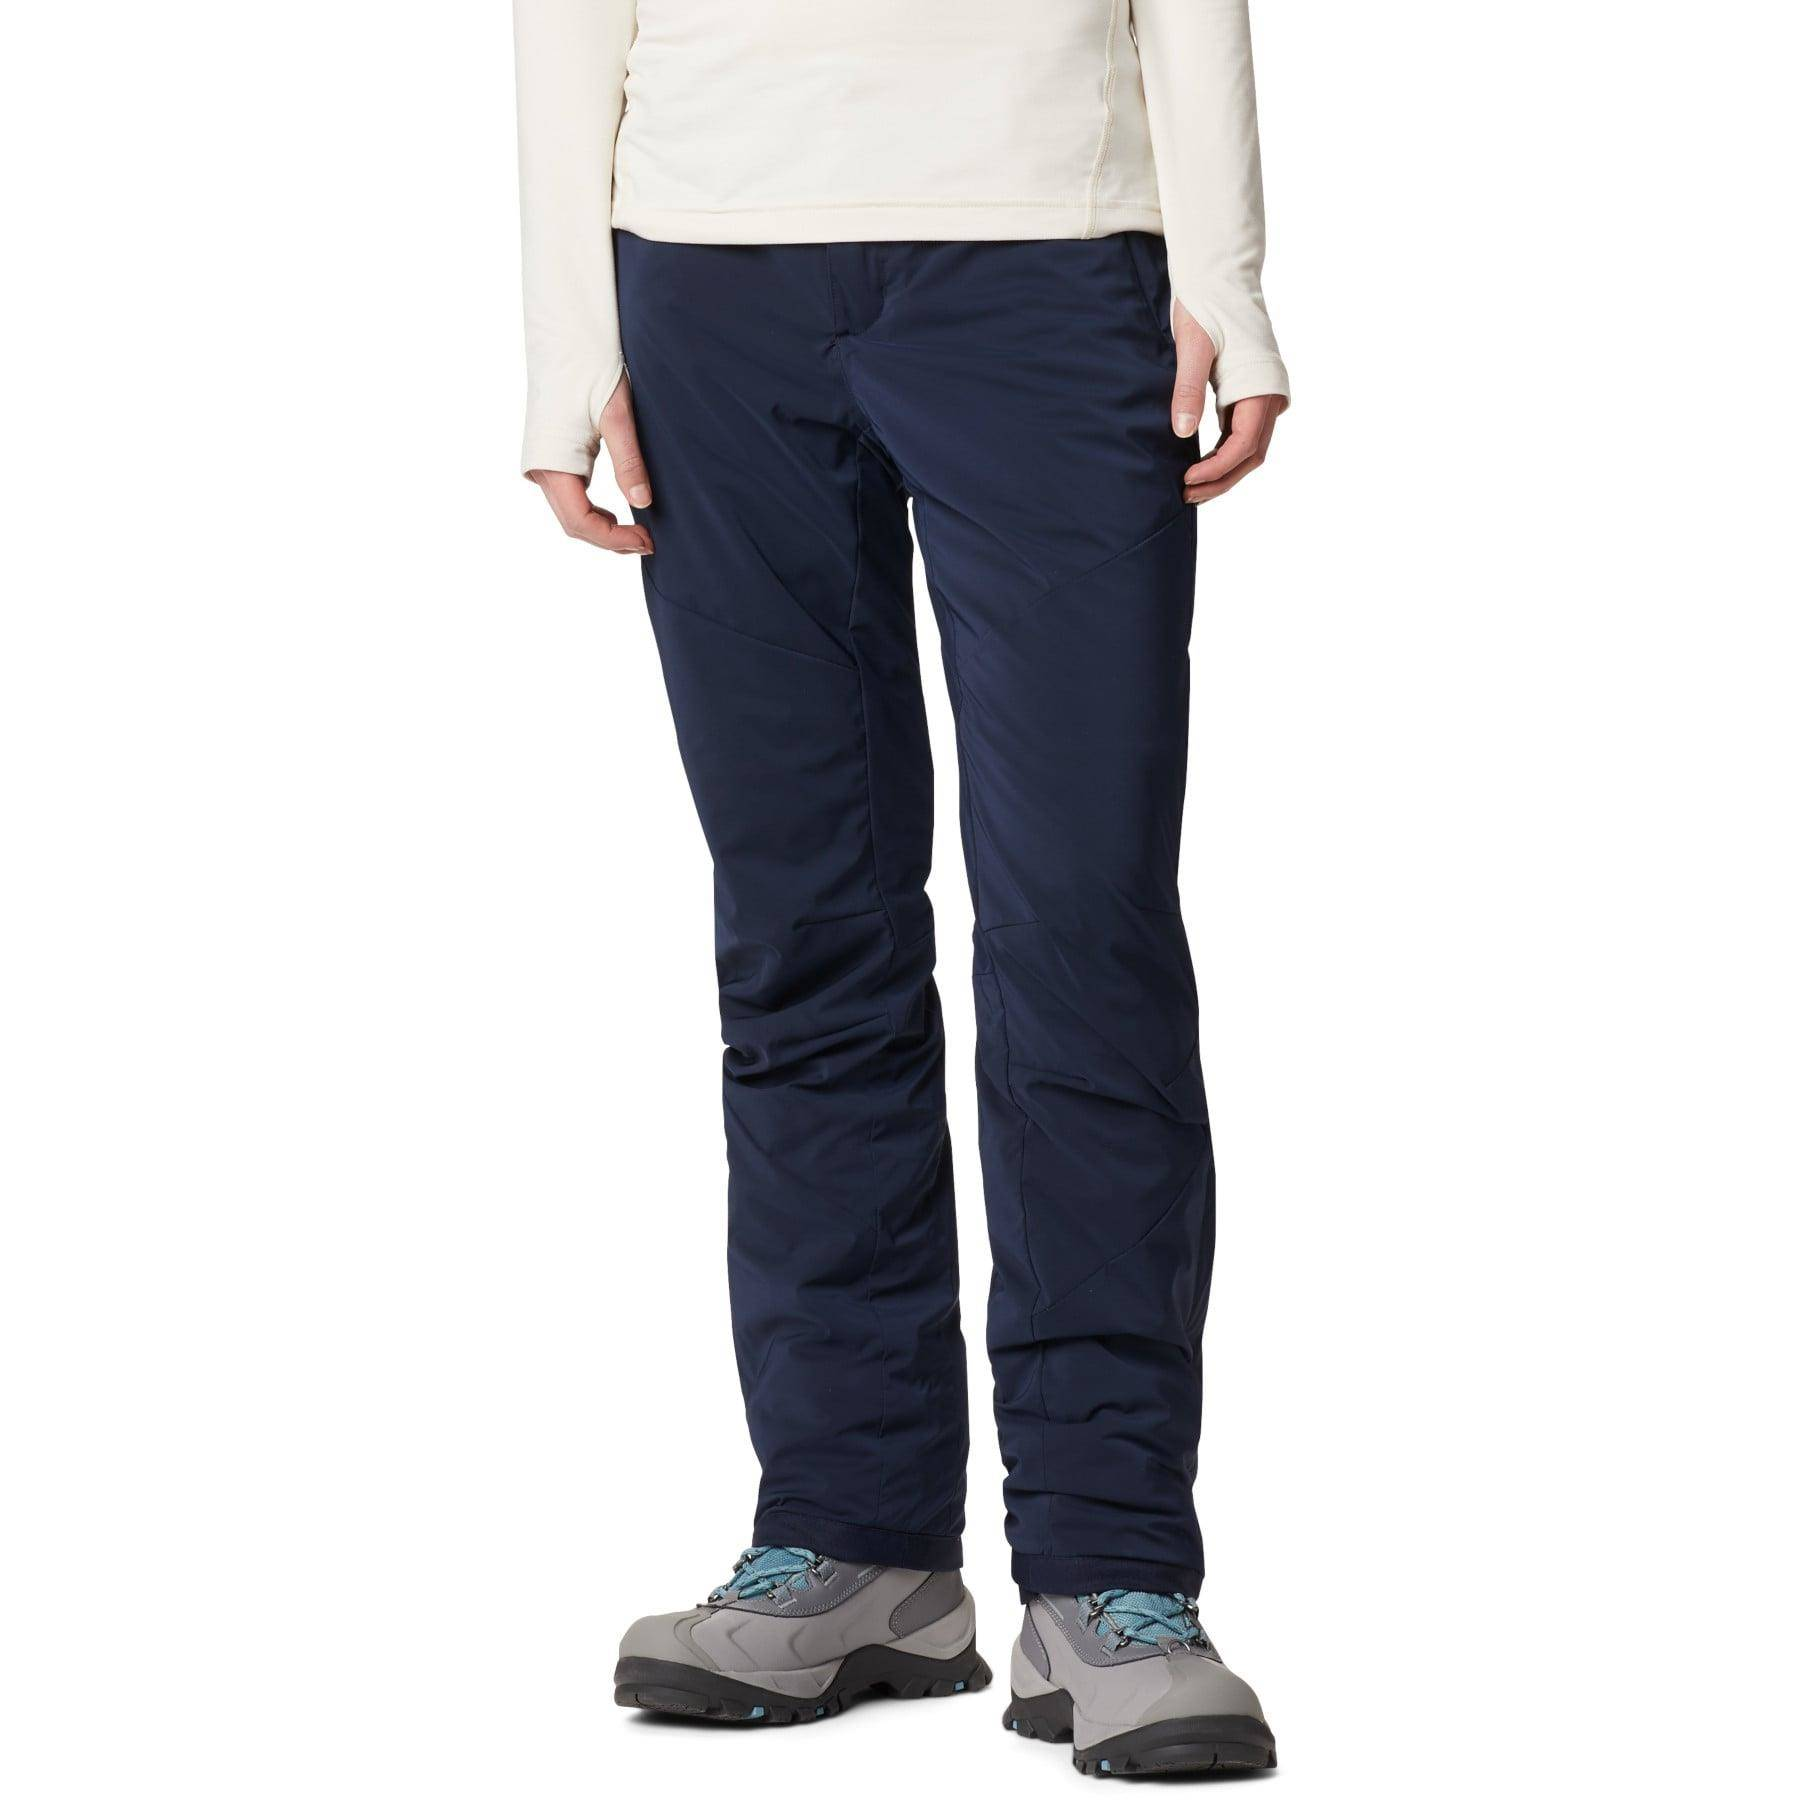 Spodenie Columbia Backslope Insulated Pant 1910071472